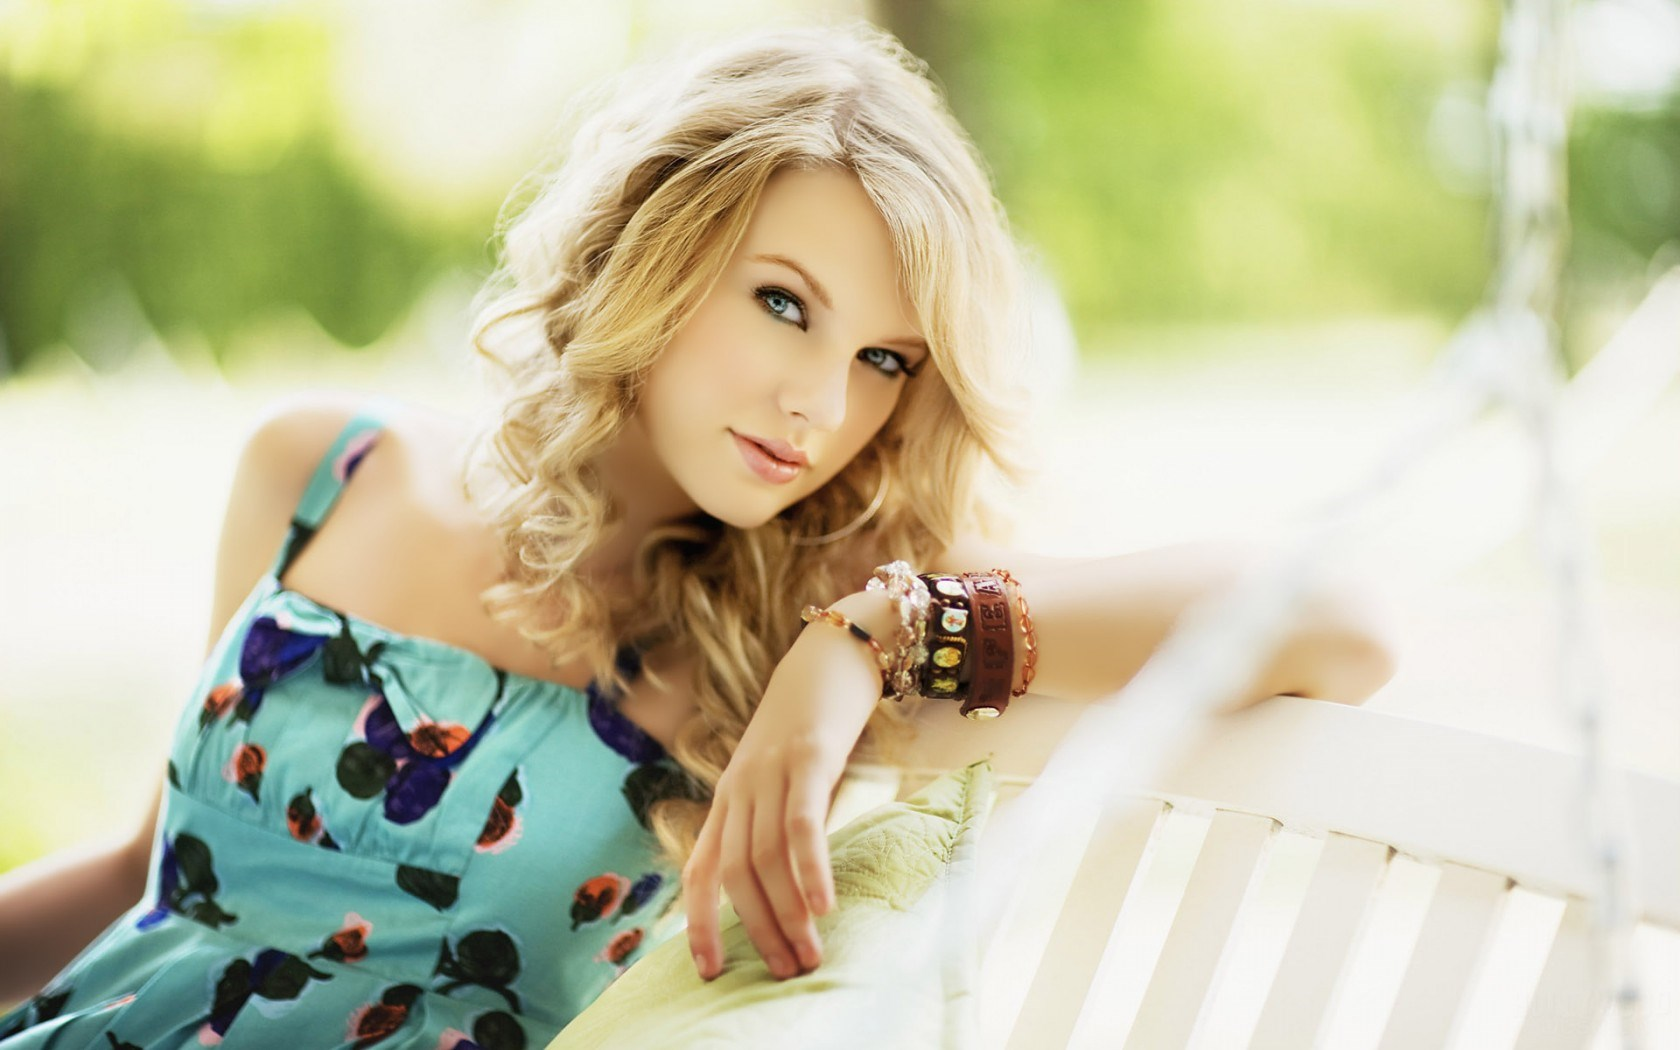 hd taylor swift free computer download pics background lovely cute look